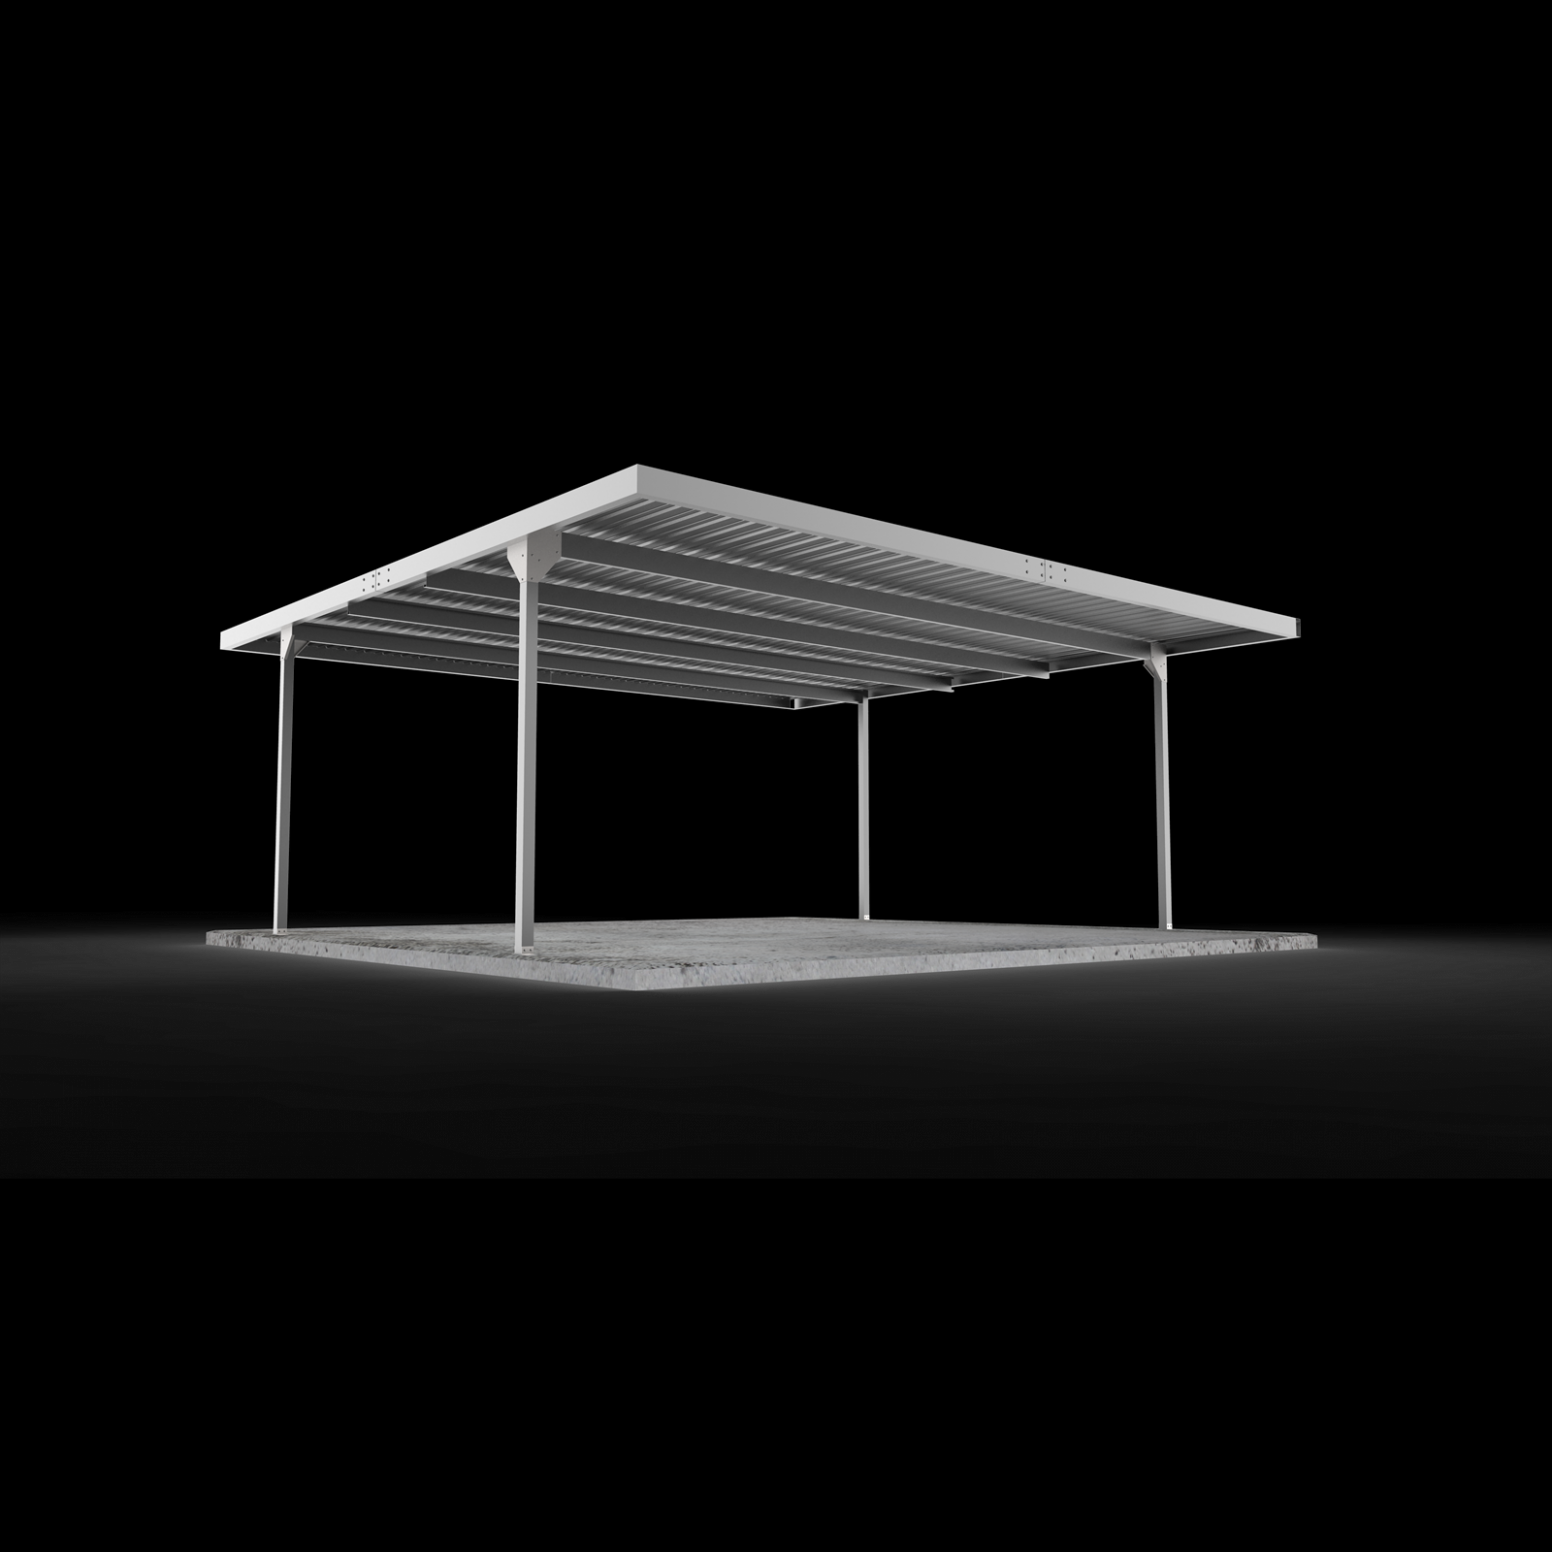 Absco Sheds 11.11 X 11.11 X 11.1111m Skillion Roof Double Carport ..